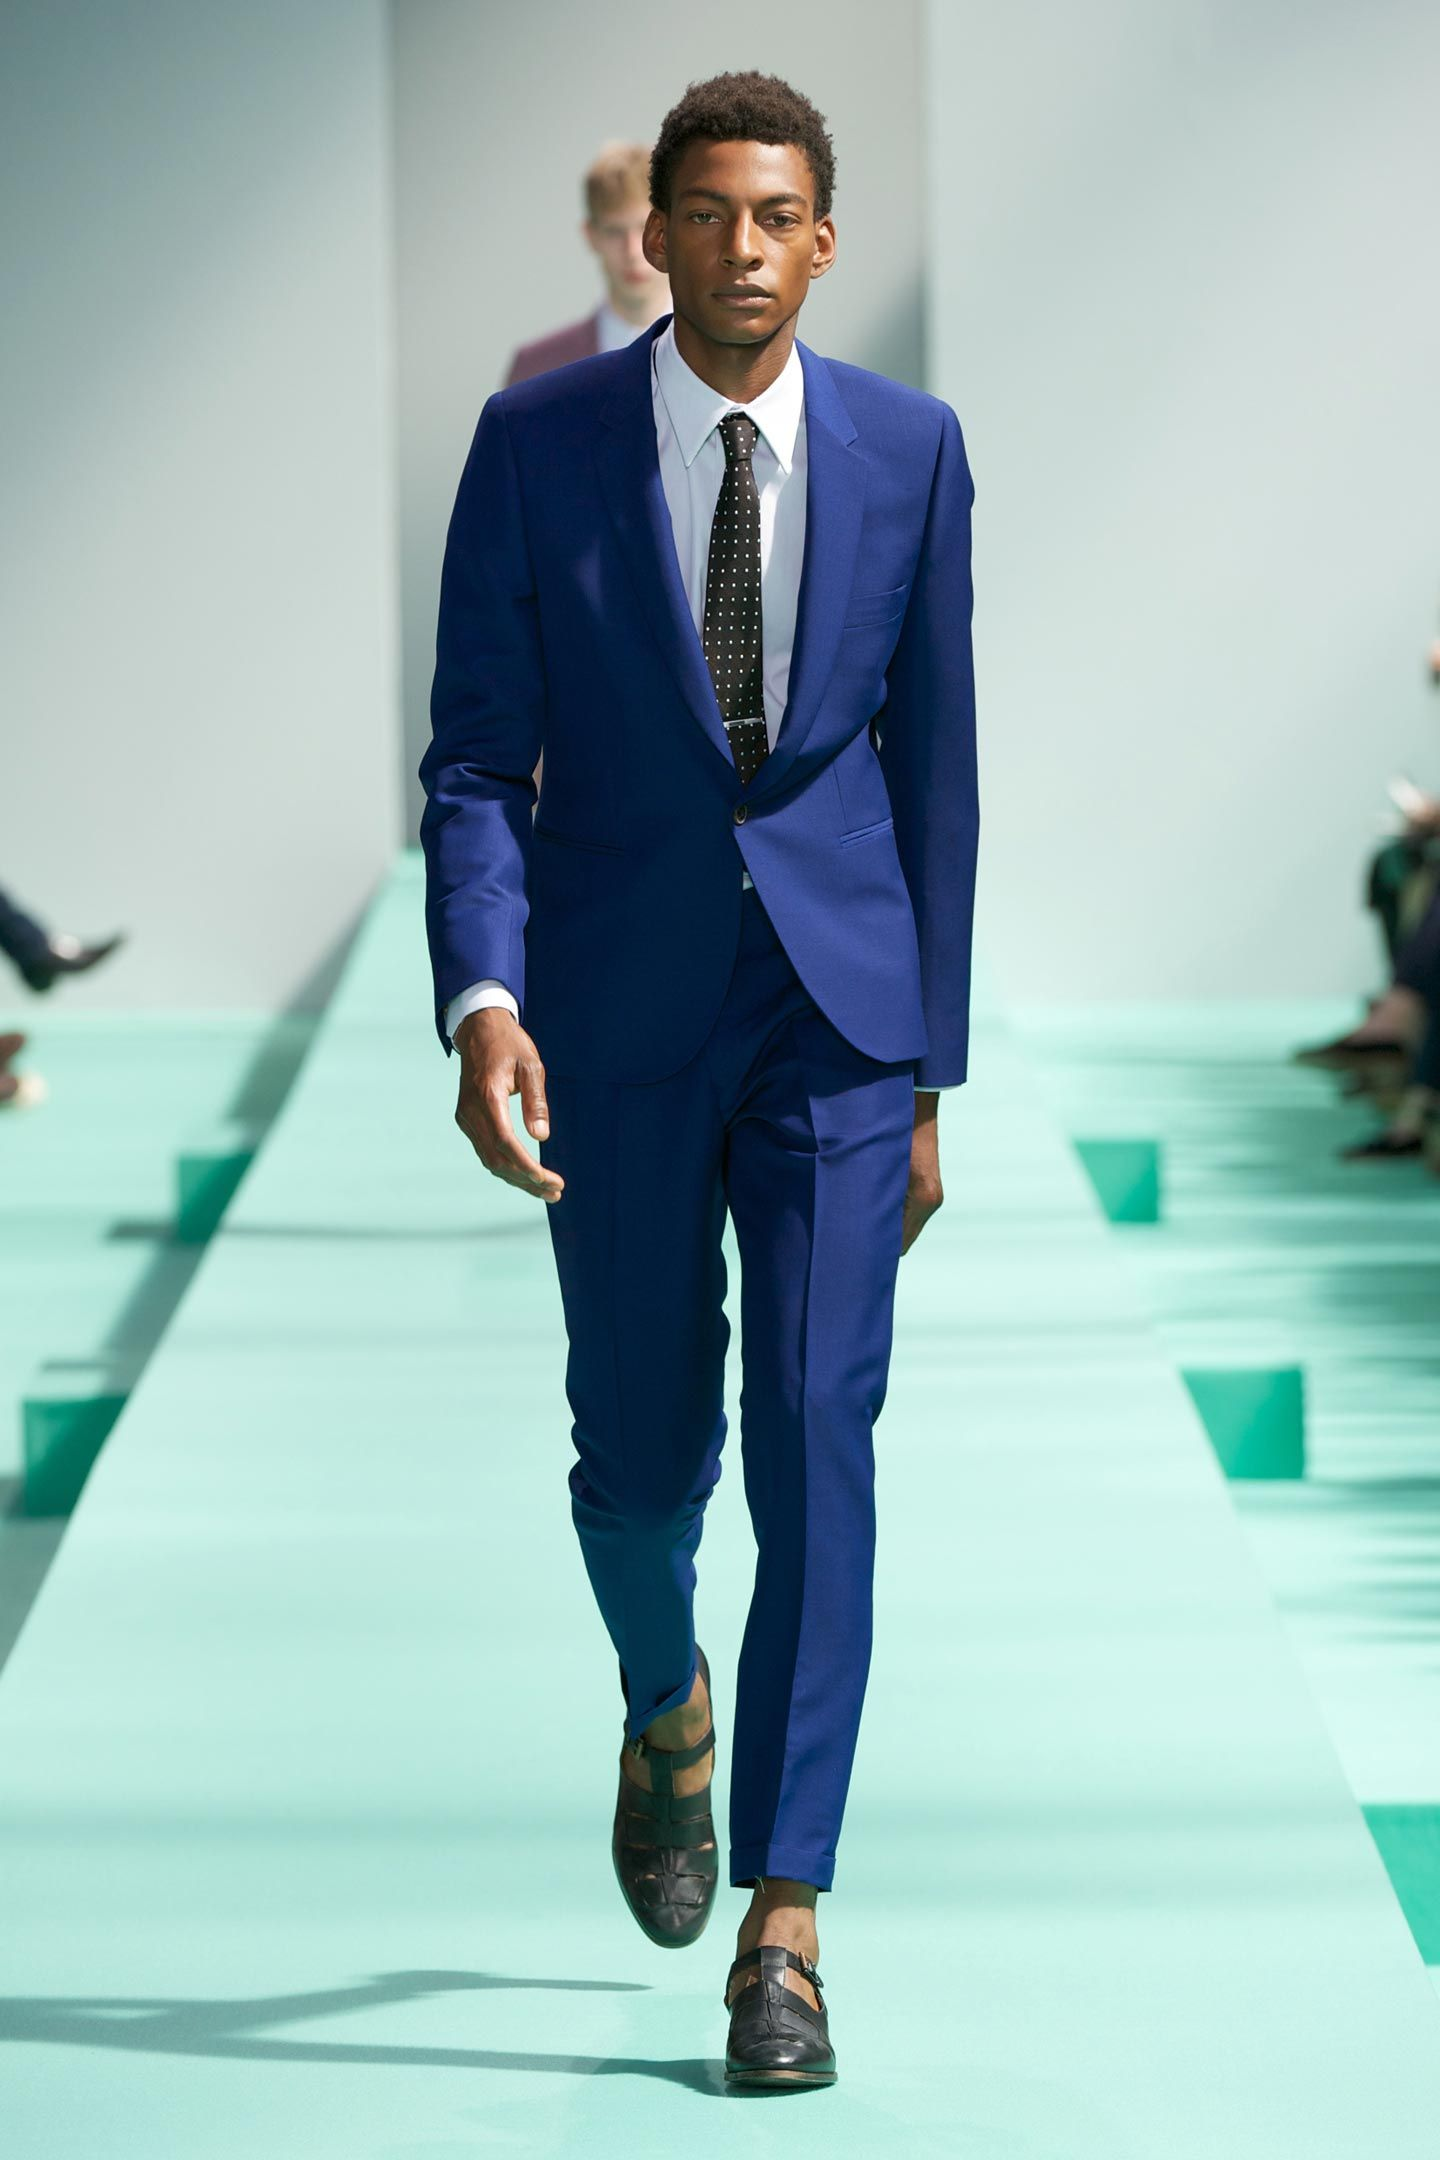 Paul Smith SS13 - Paul Smith Collections | Natty Guy™ | Pinterest ...